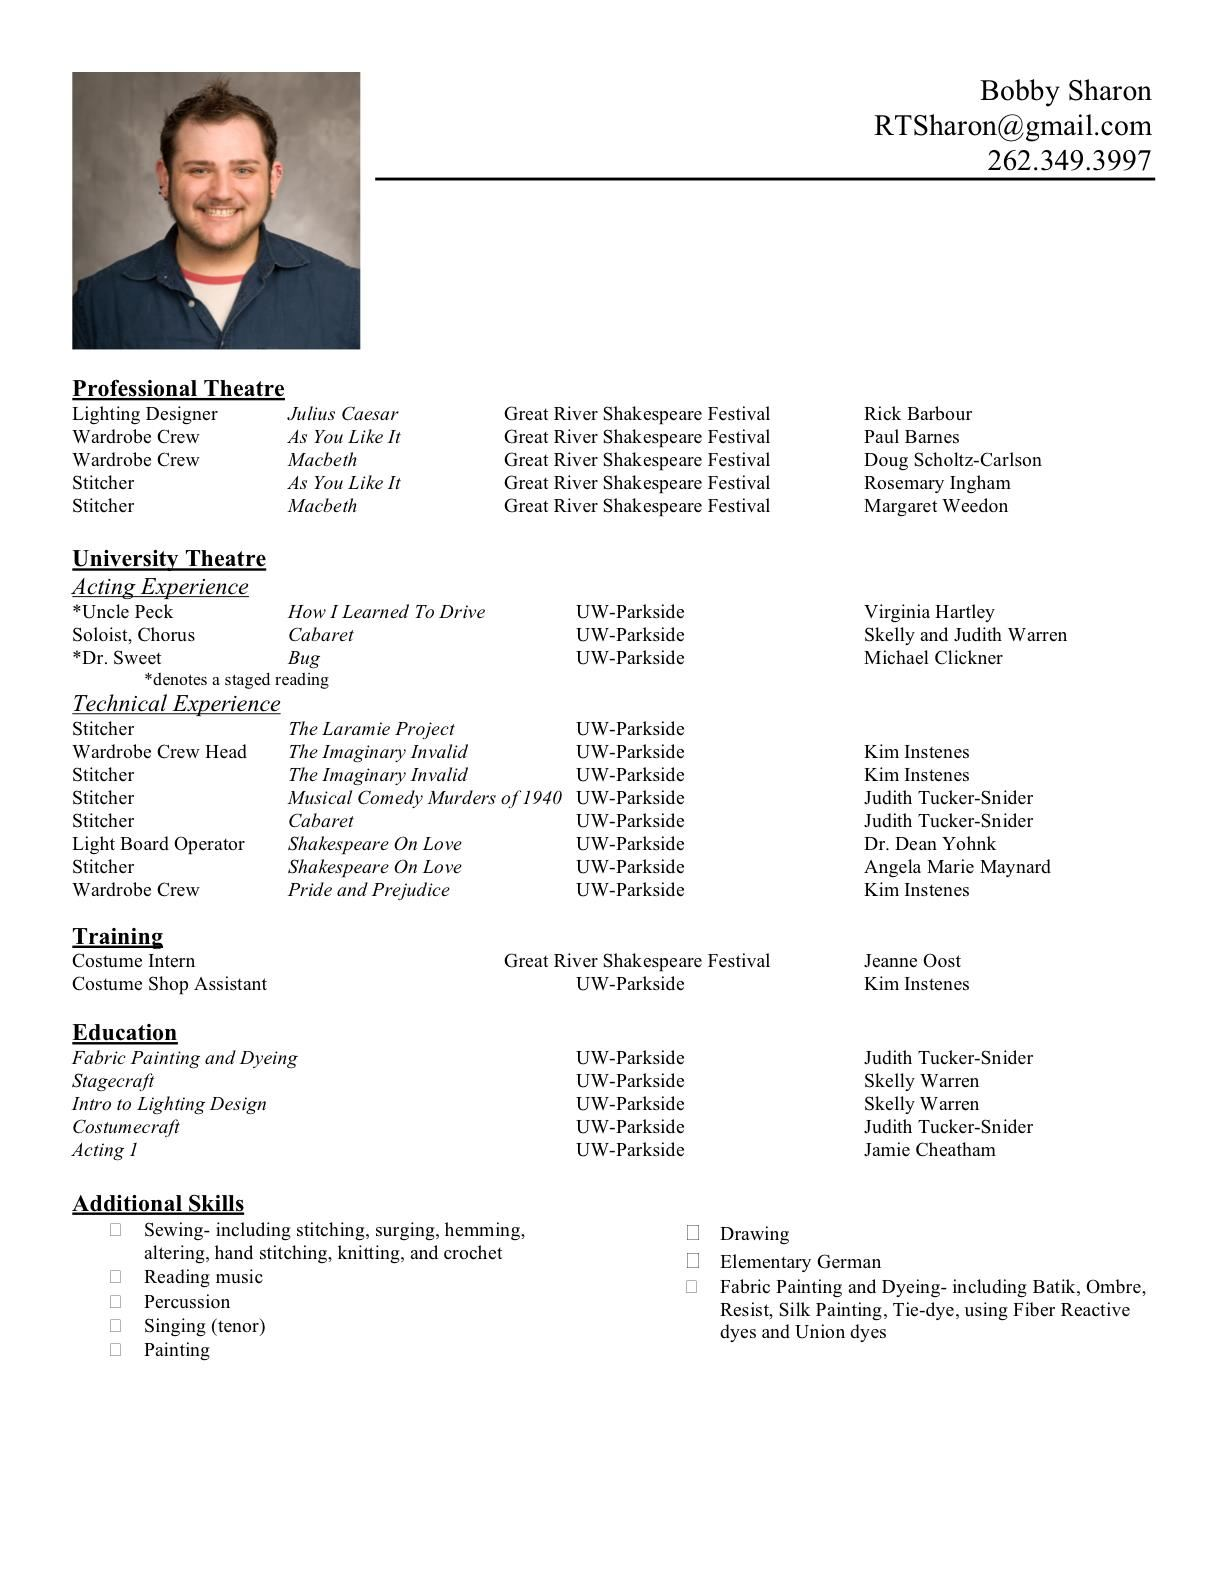 resume format sample download resume format samples download free professional resume format professional resume format for experienced download invitation